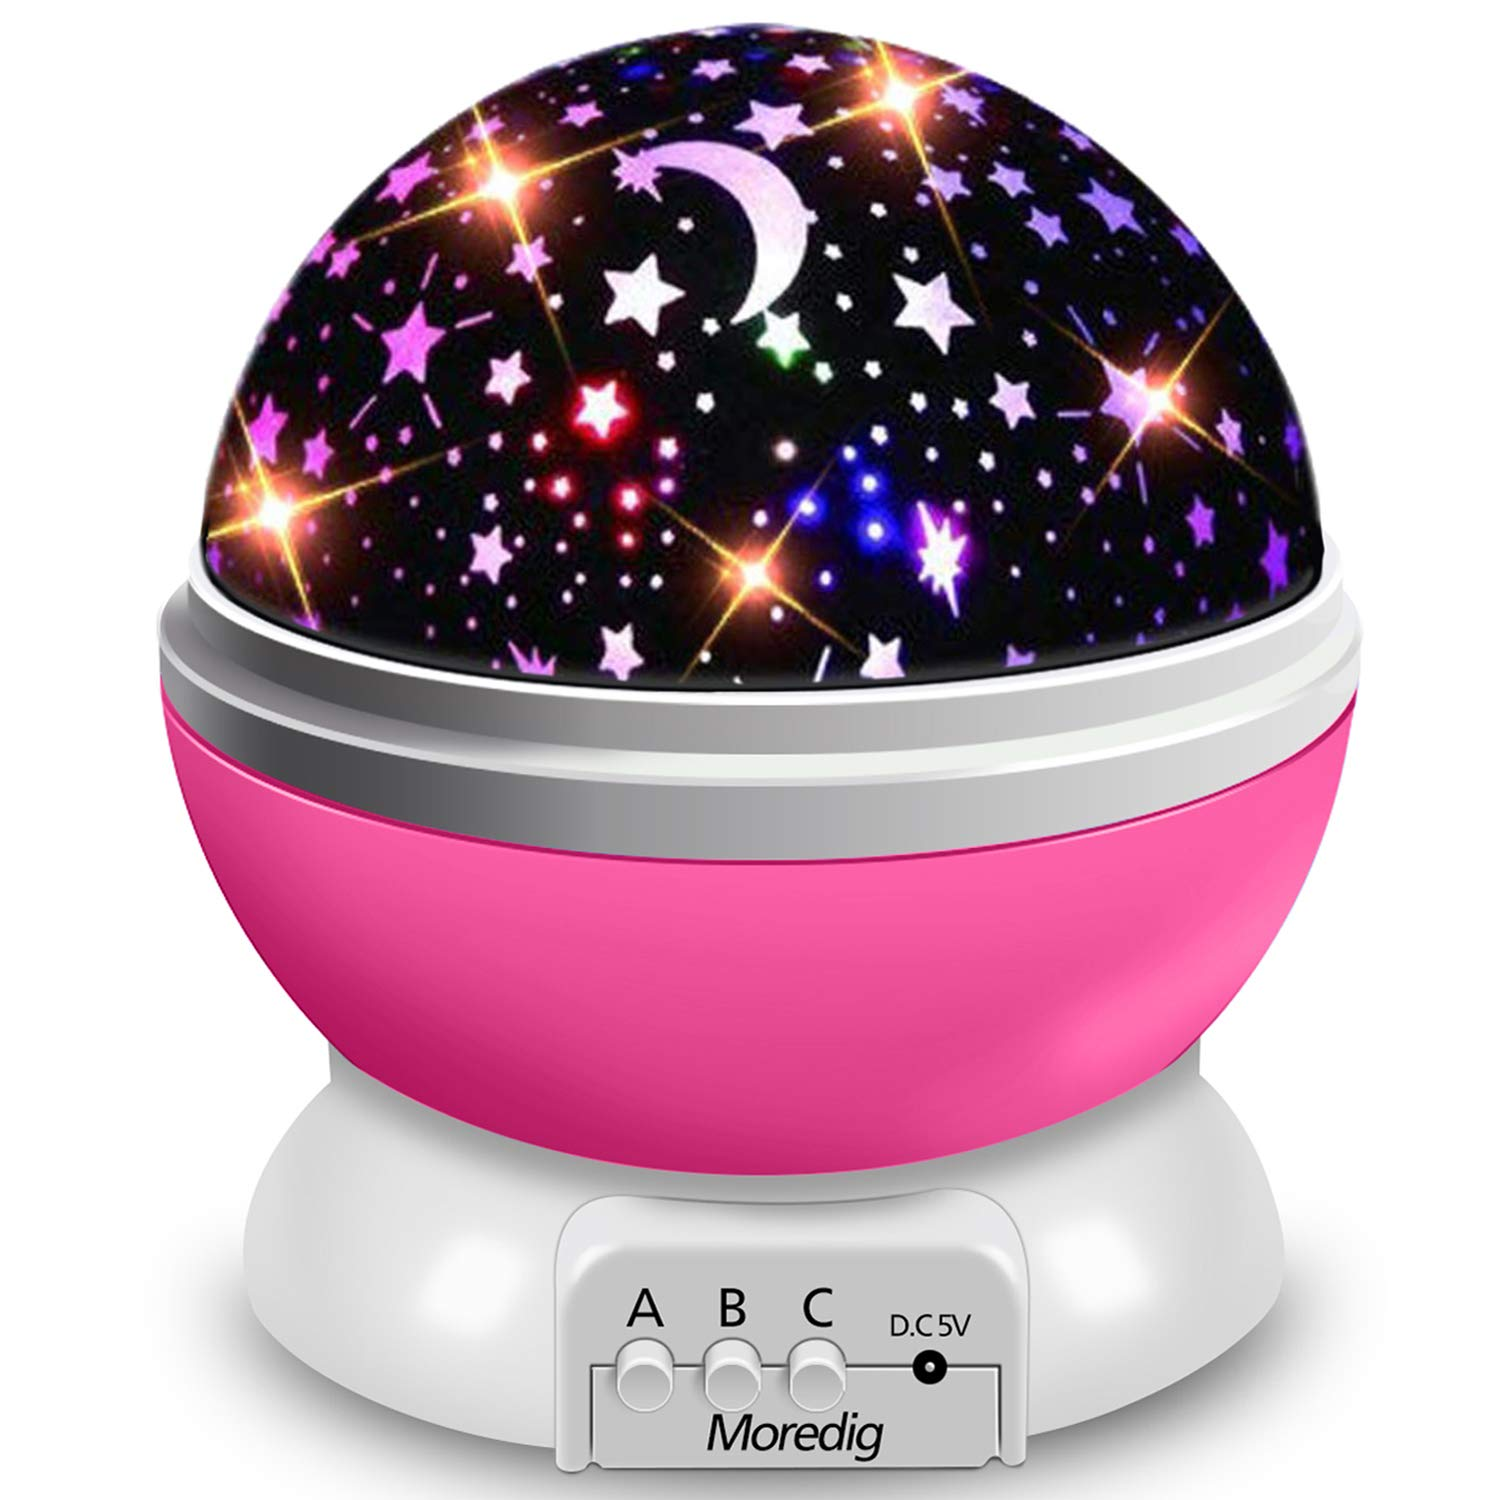 Moredig Starry Ceiling Night Light Projector, 360 Degree Rotating Light Projector with 8 Color Light Change for Kids Baby - Pink Night Light